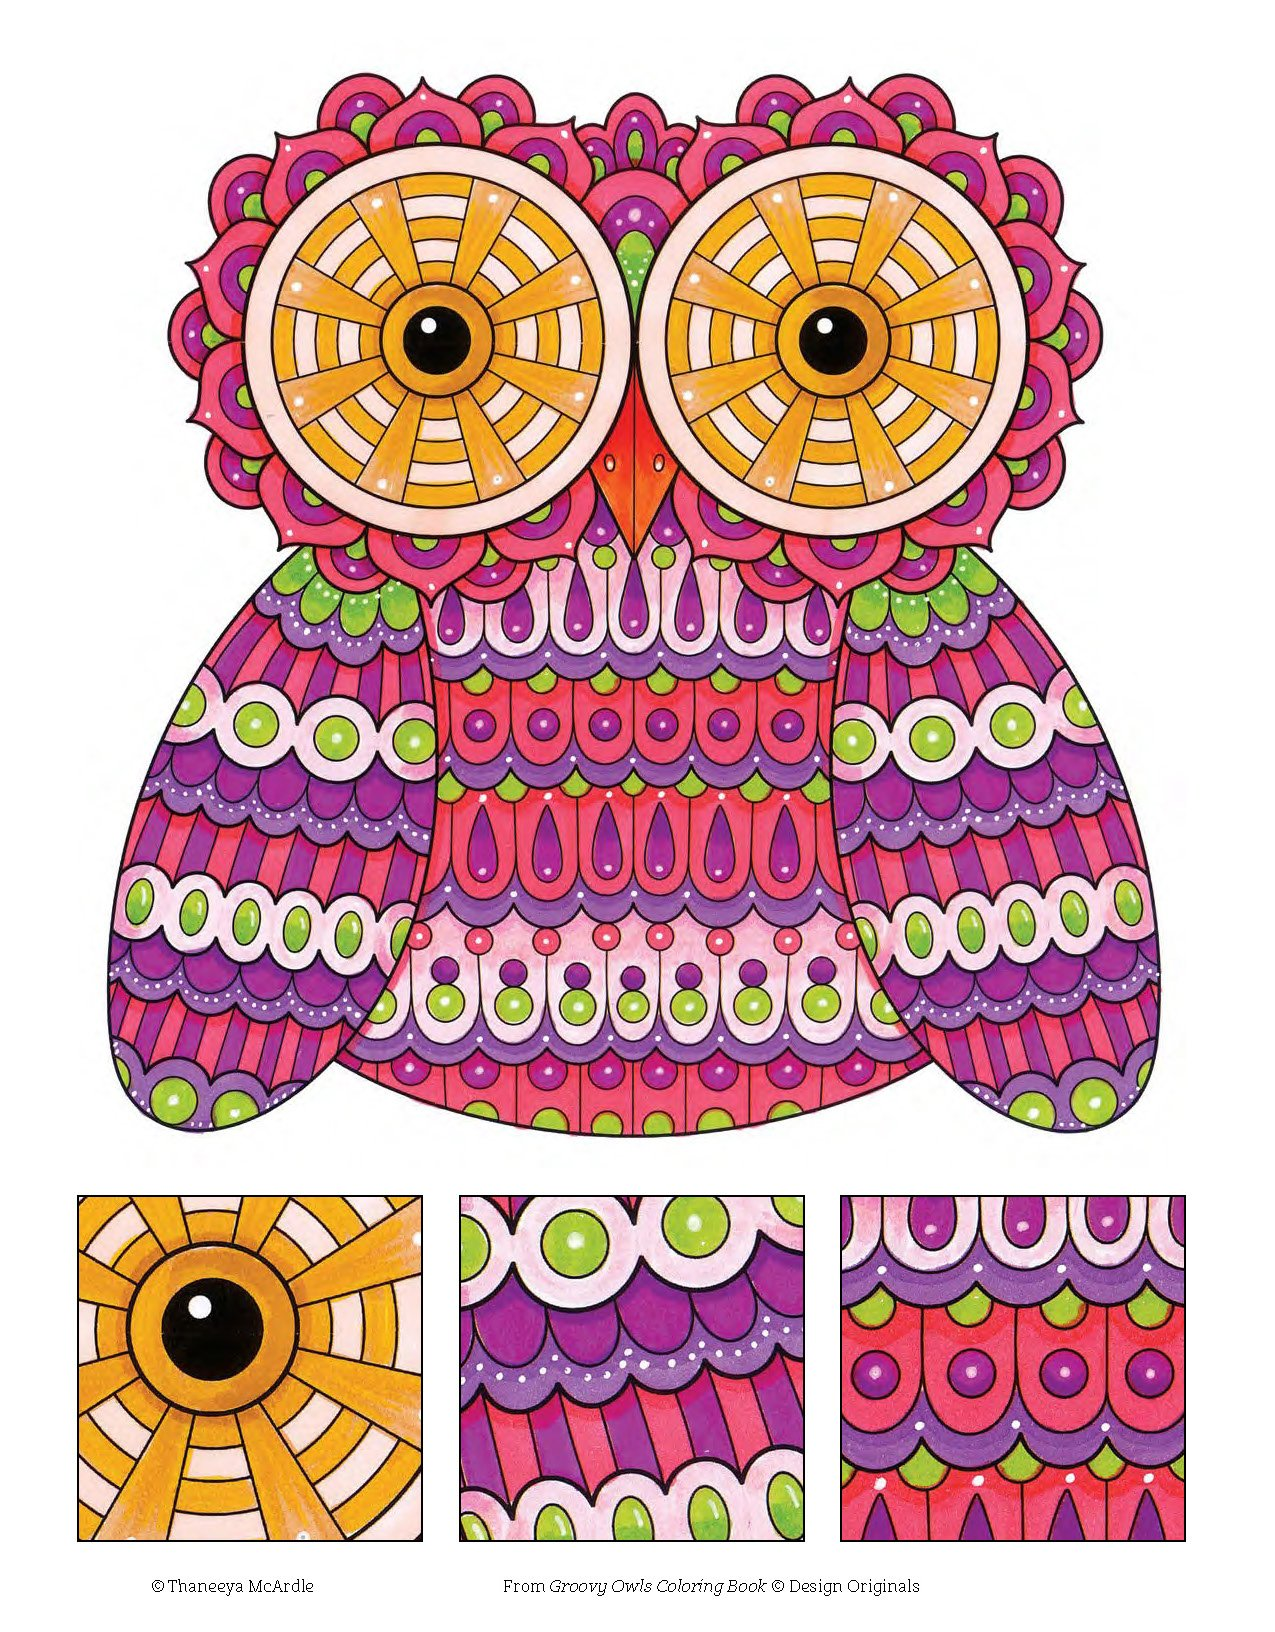 amazon com groovy owls coloring book coloring is fun design